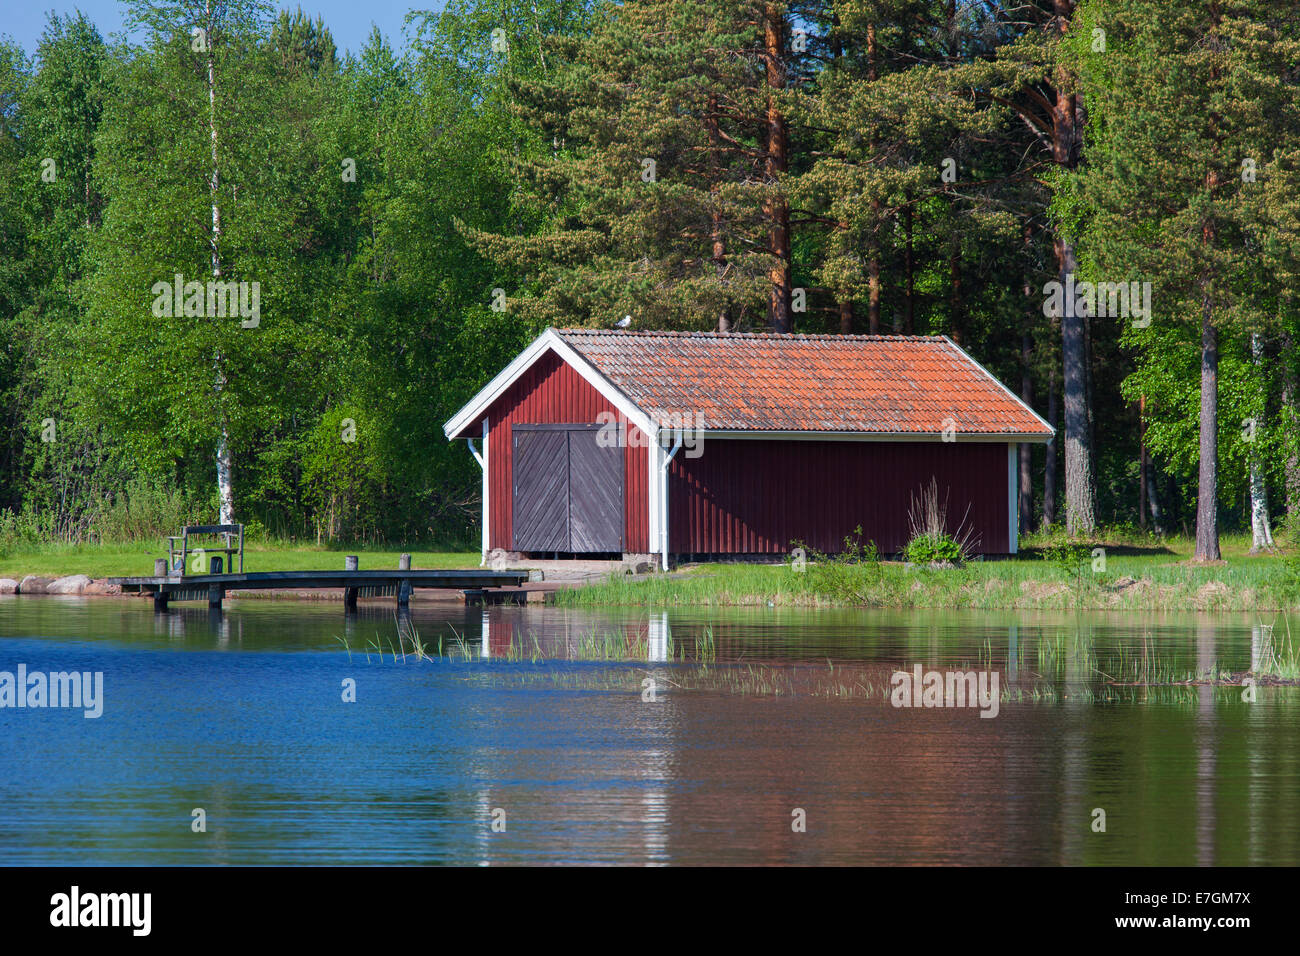 Red wooden boathouse along lake Siljan in summer, Dalarna, Sweden - Stock Image